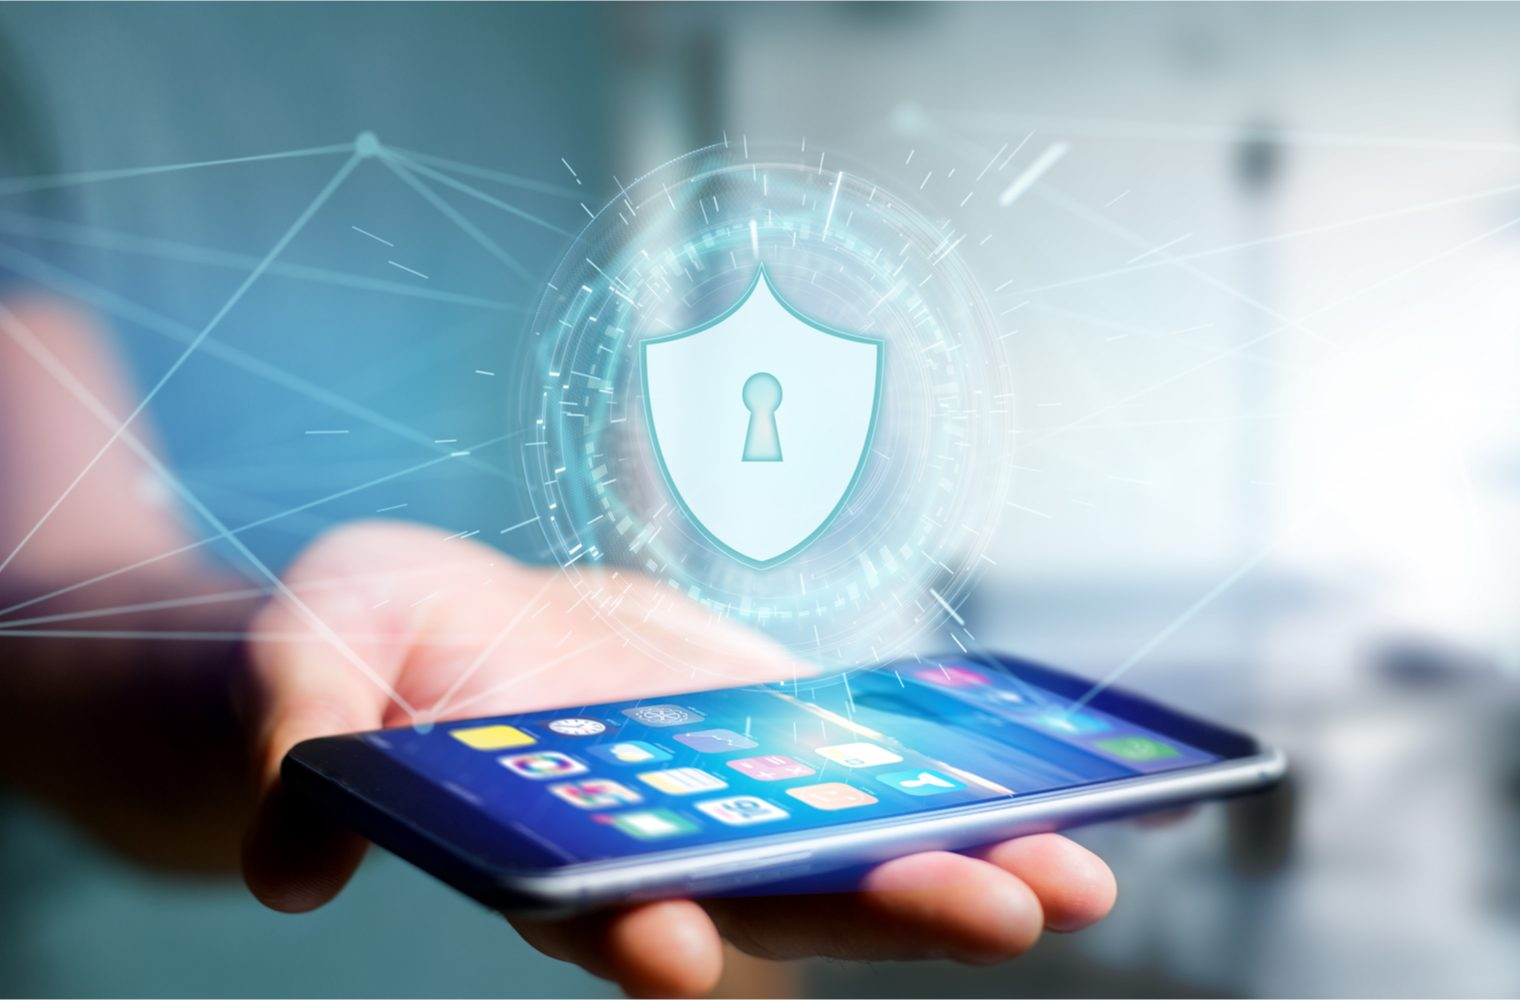 Privacy Network Elixxir Invites Smartphone Users to Test Private Messaging